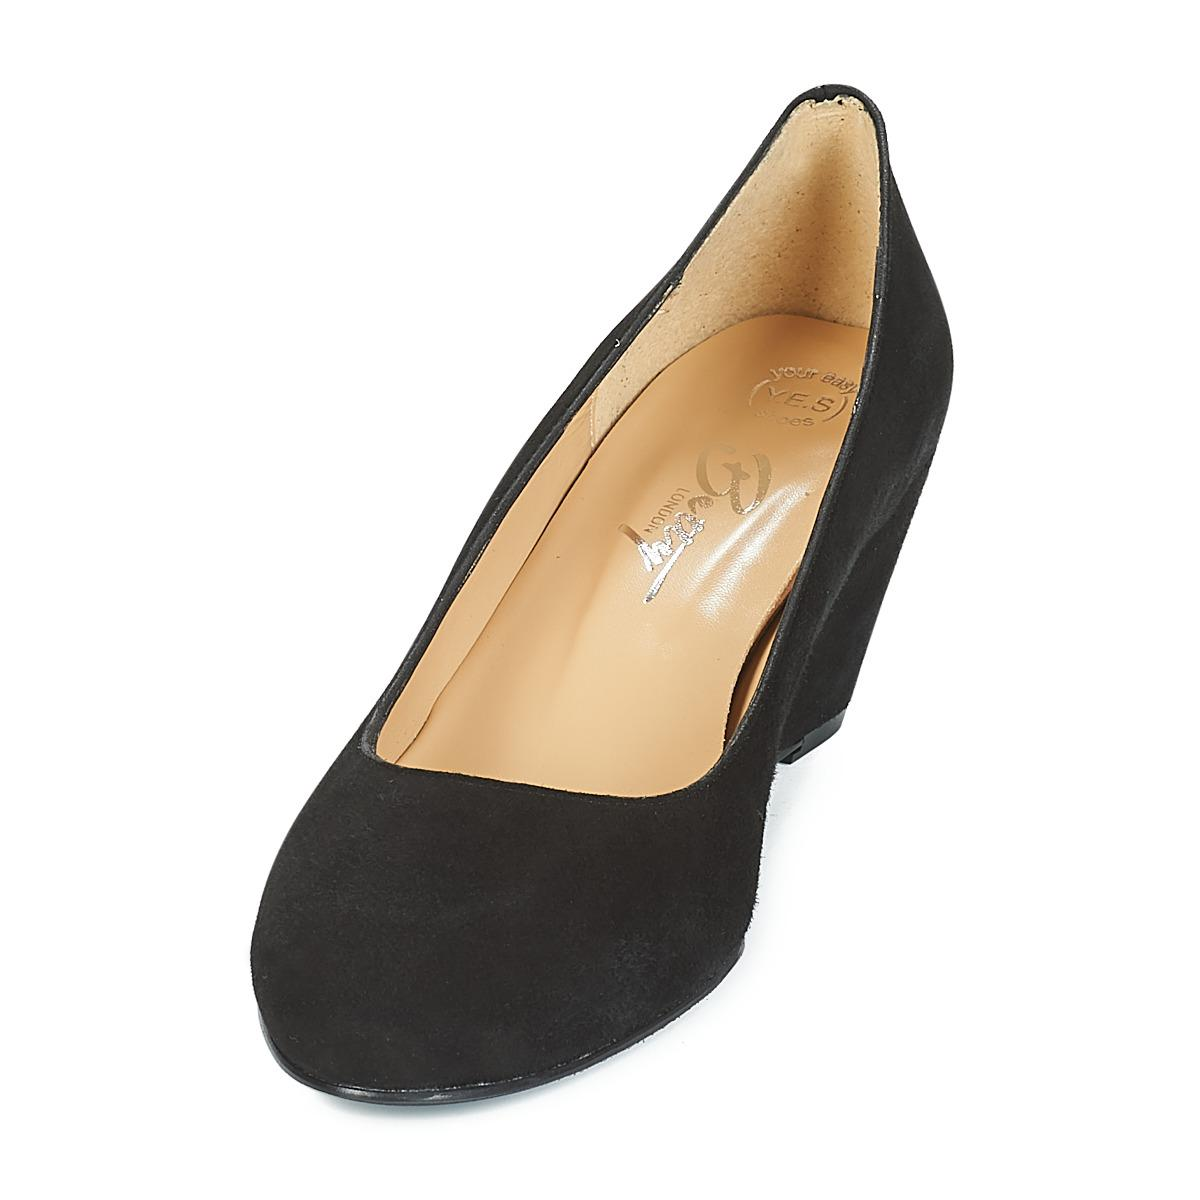 London Court In Jakita Shoes in Betty Lyst Black Black Women's P4tdxPqf